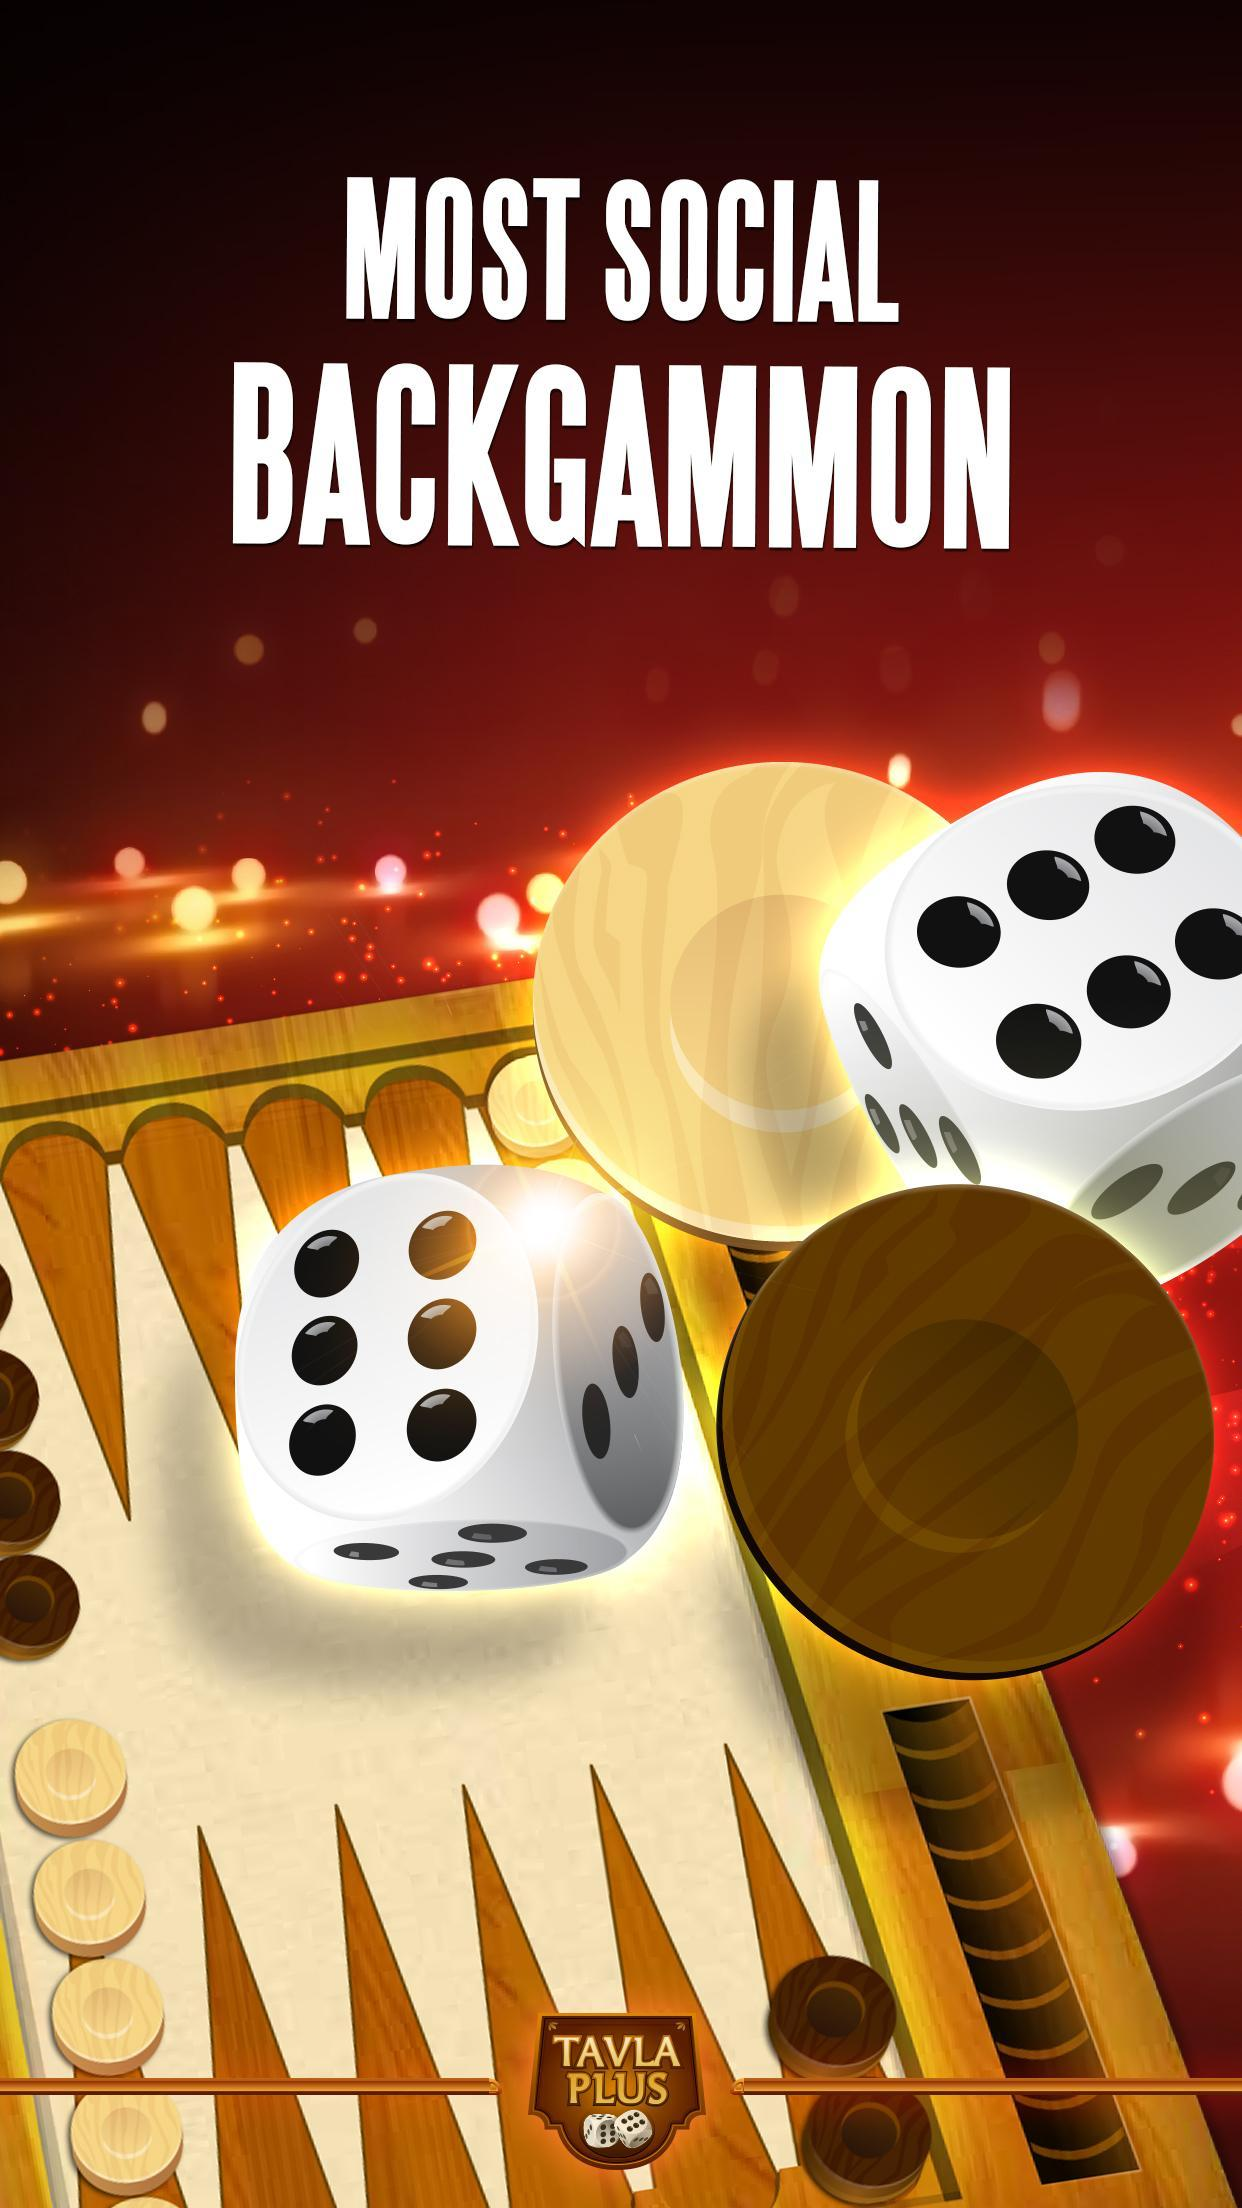 Backgammon Plus 4.28.2 Screenshot 1